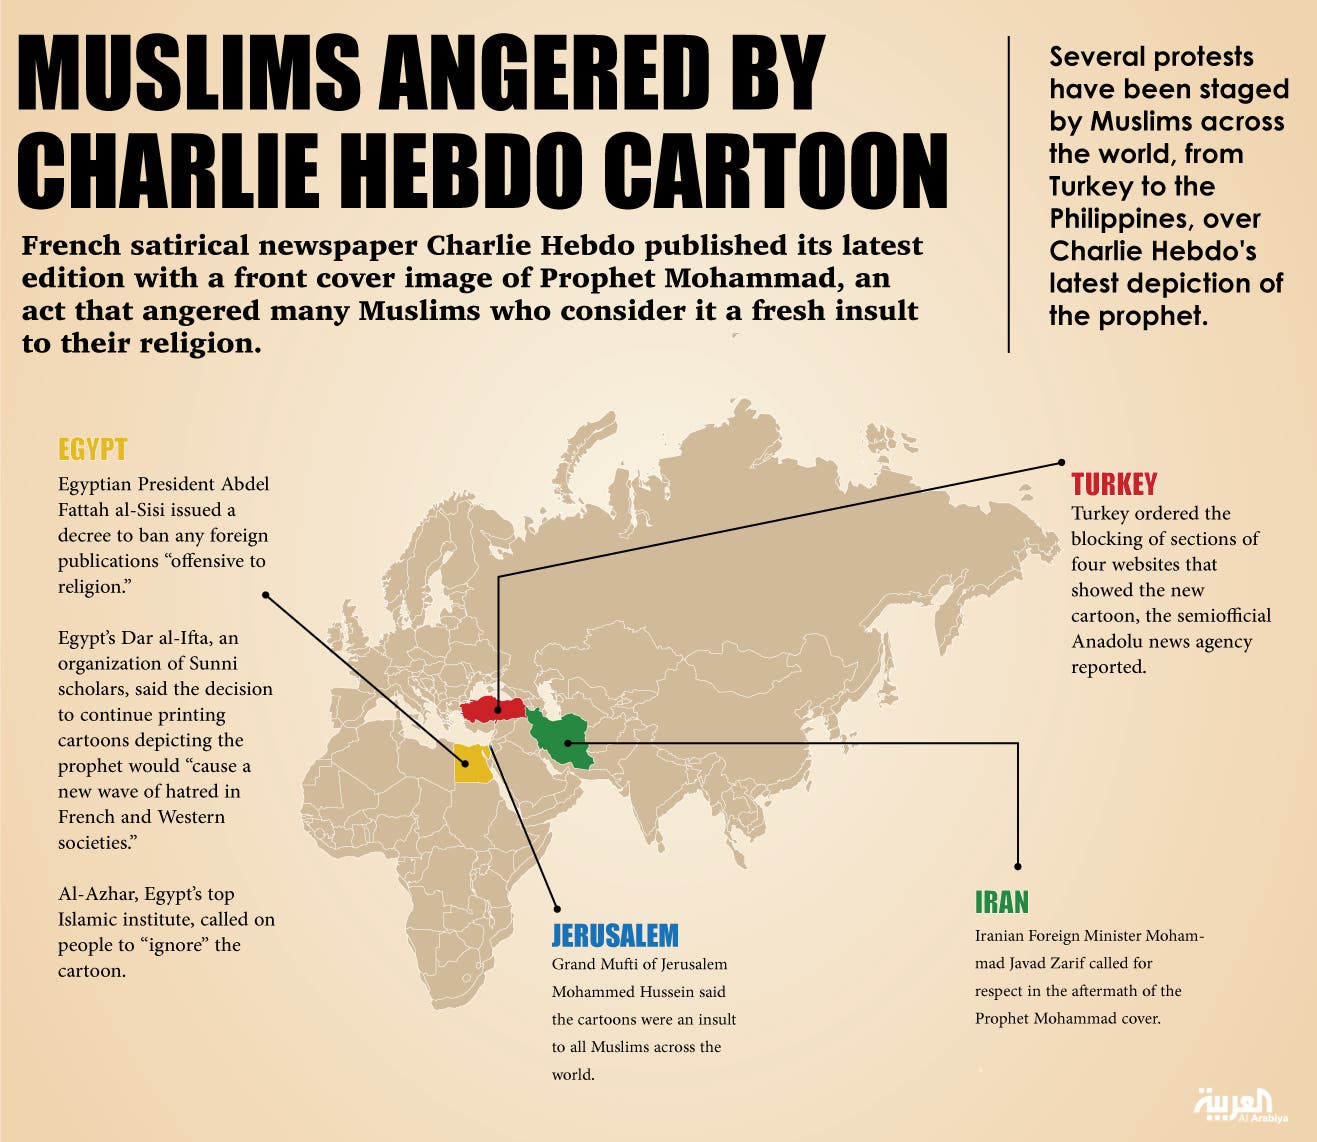 Infographic: Muslims angered by Charlie Hebdo's prophet cartoon